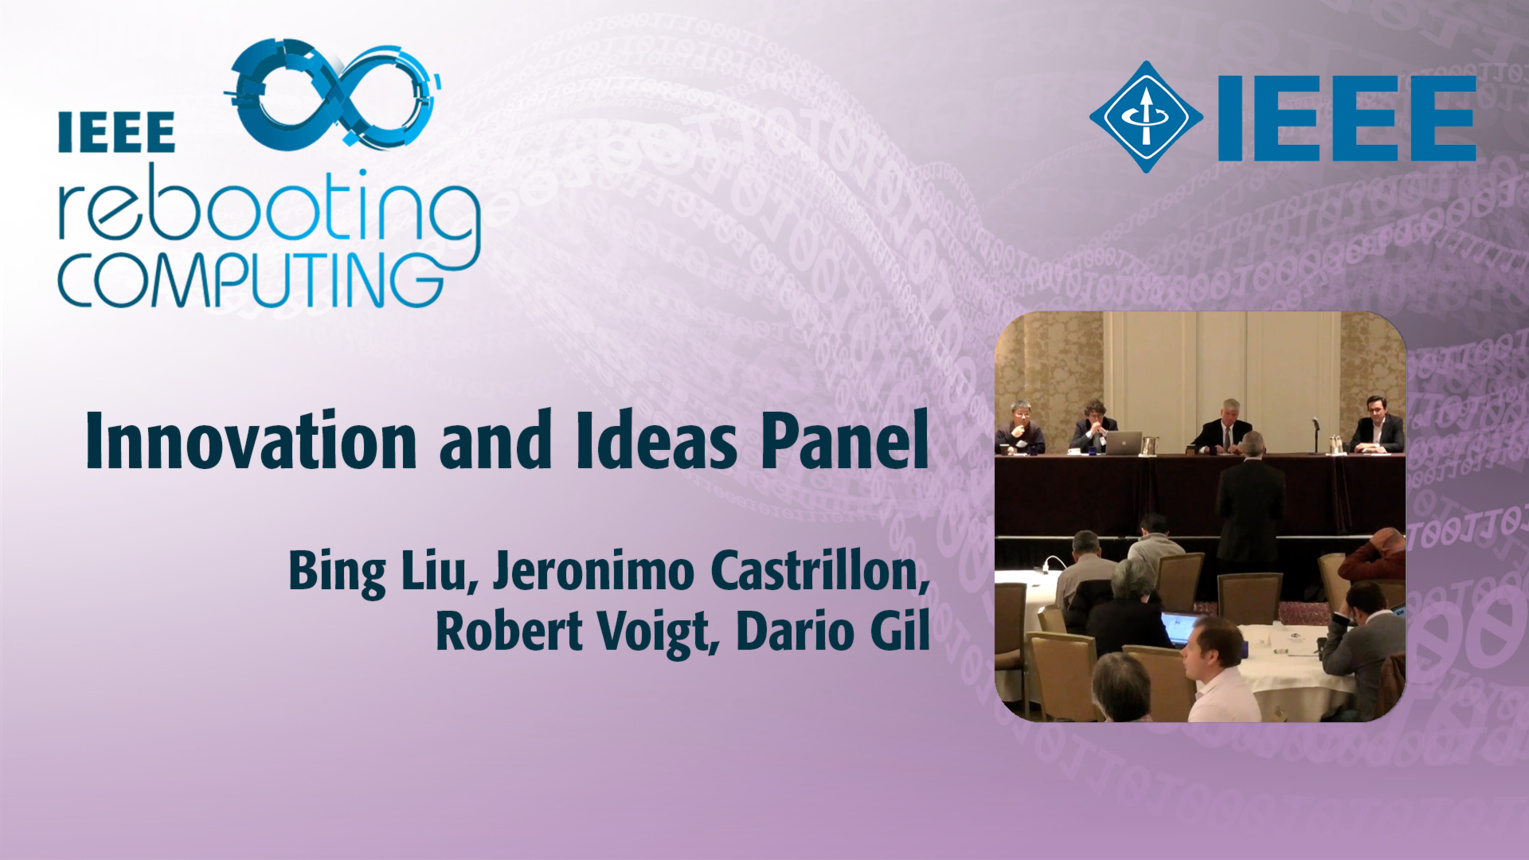 Innovation and Ideas Panel: IEEE Rebooting Computing 2017 Industry Summit on the Future of Computing